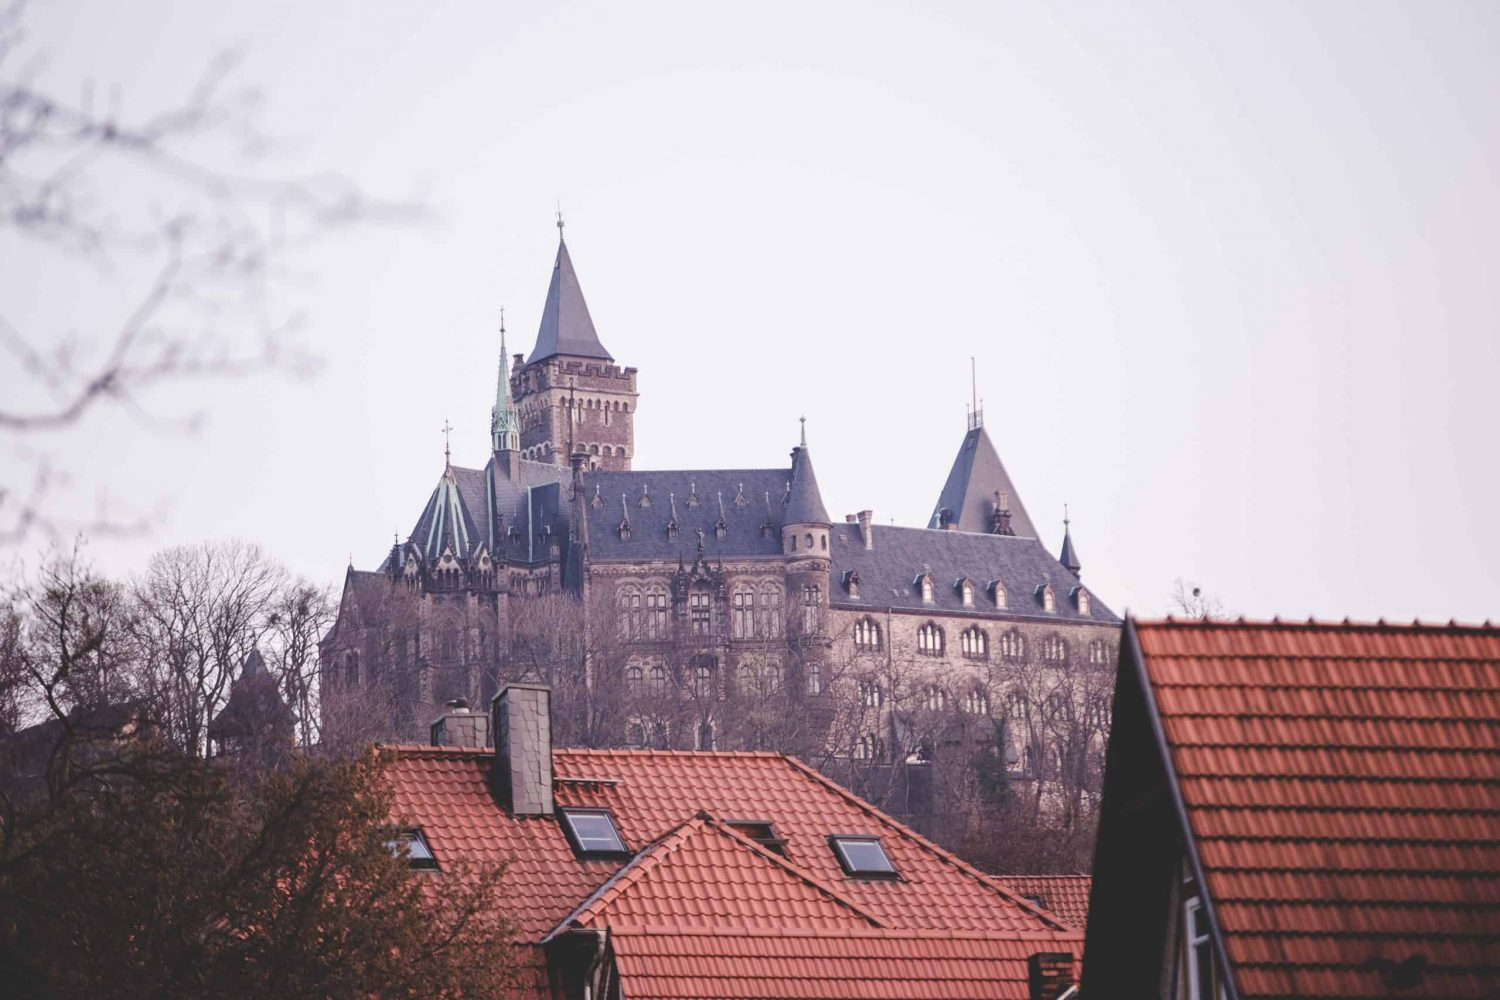 Wernigerode Castle is an excellent place to visit in Wernigerode, Germany